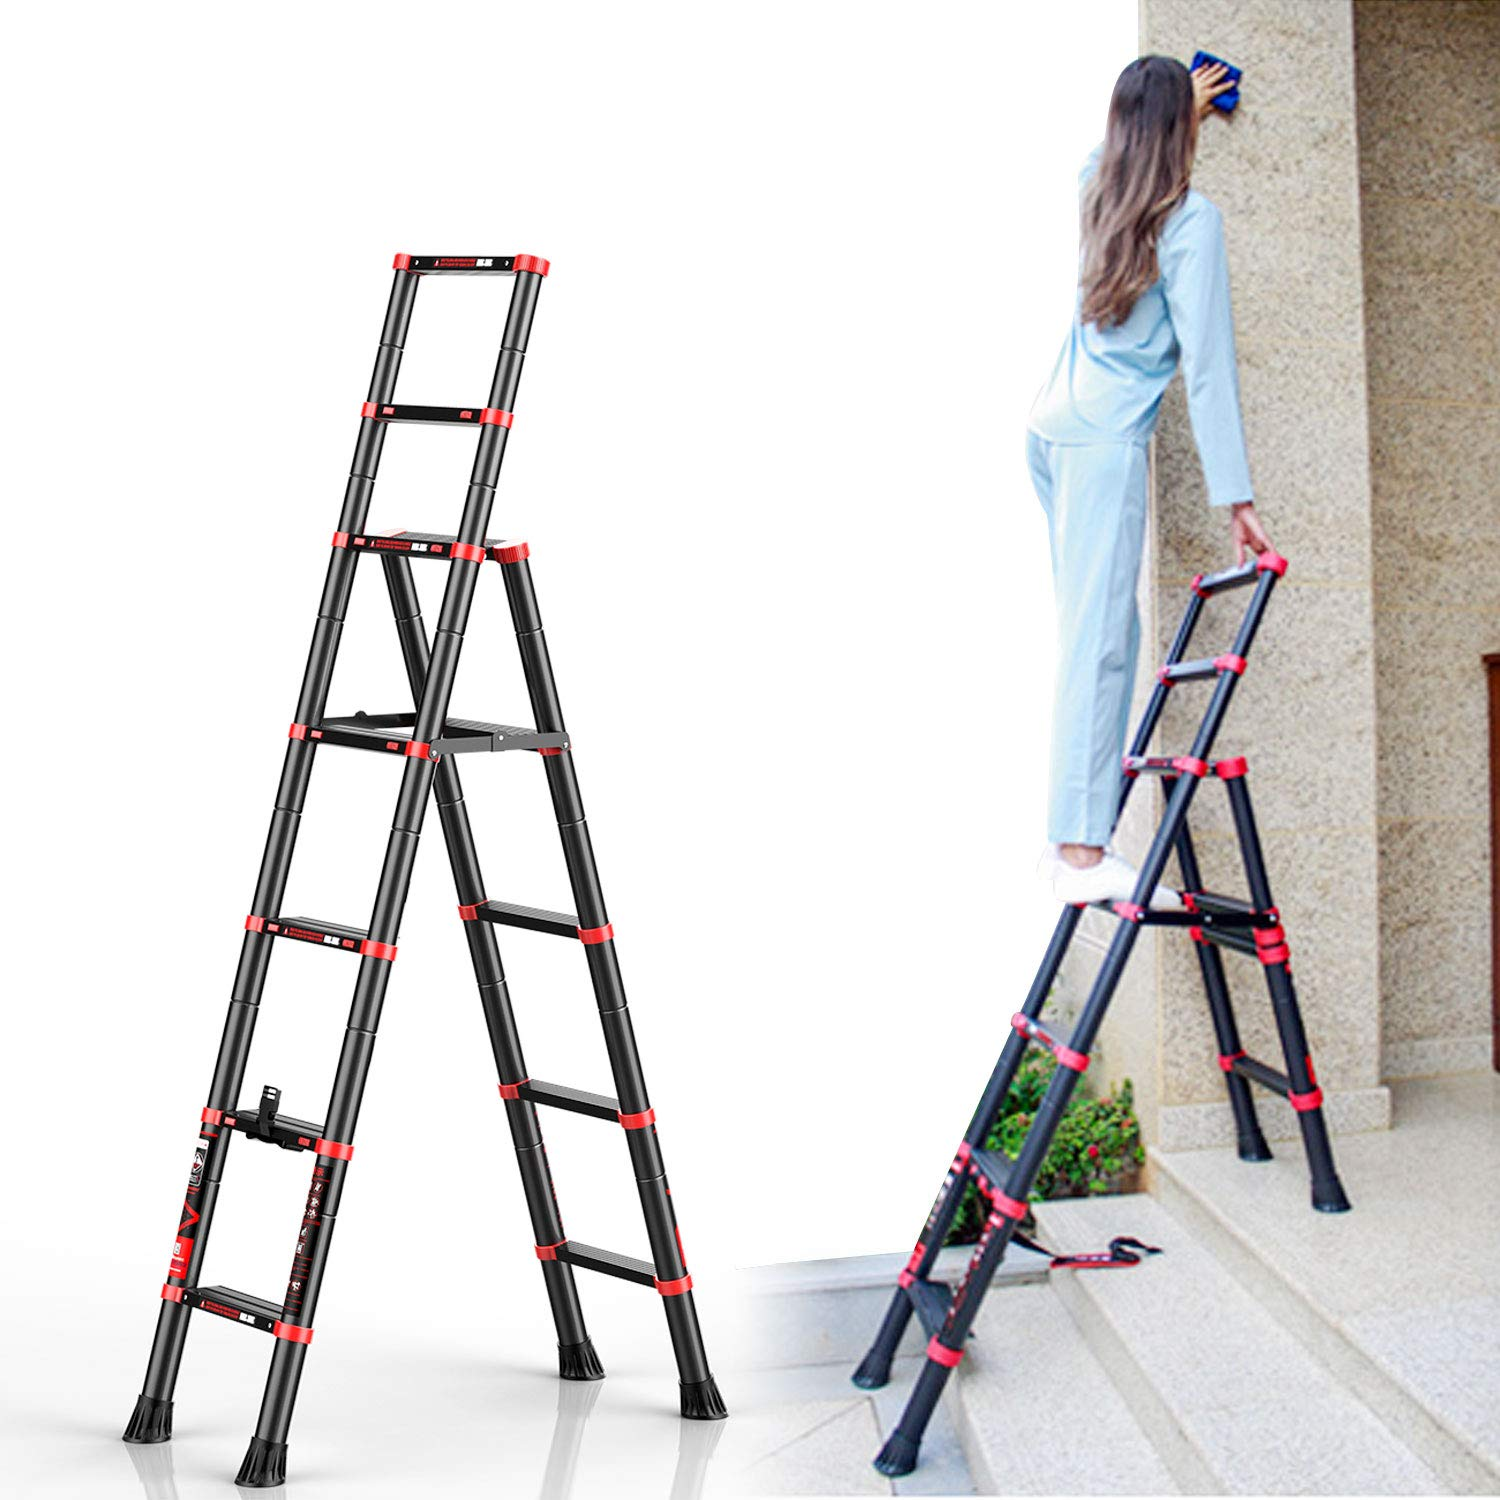 charaHOME 5+7 Step Ladders Telescopic Ladder with Aluminum 6 ft Tall Extendable Retractable Compact and Multi Position Ladder Telescoping Lightweight Portable Ladder Height-Locking Latches A-Frame